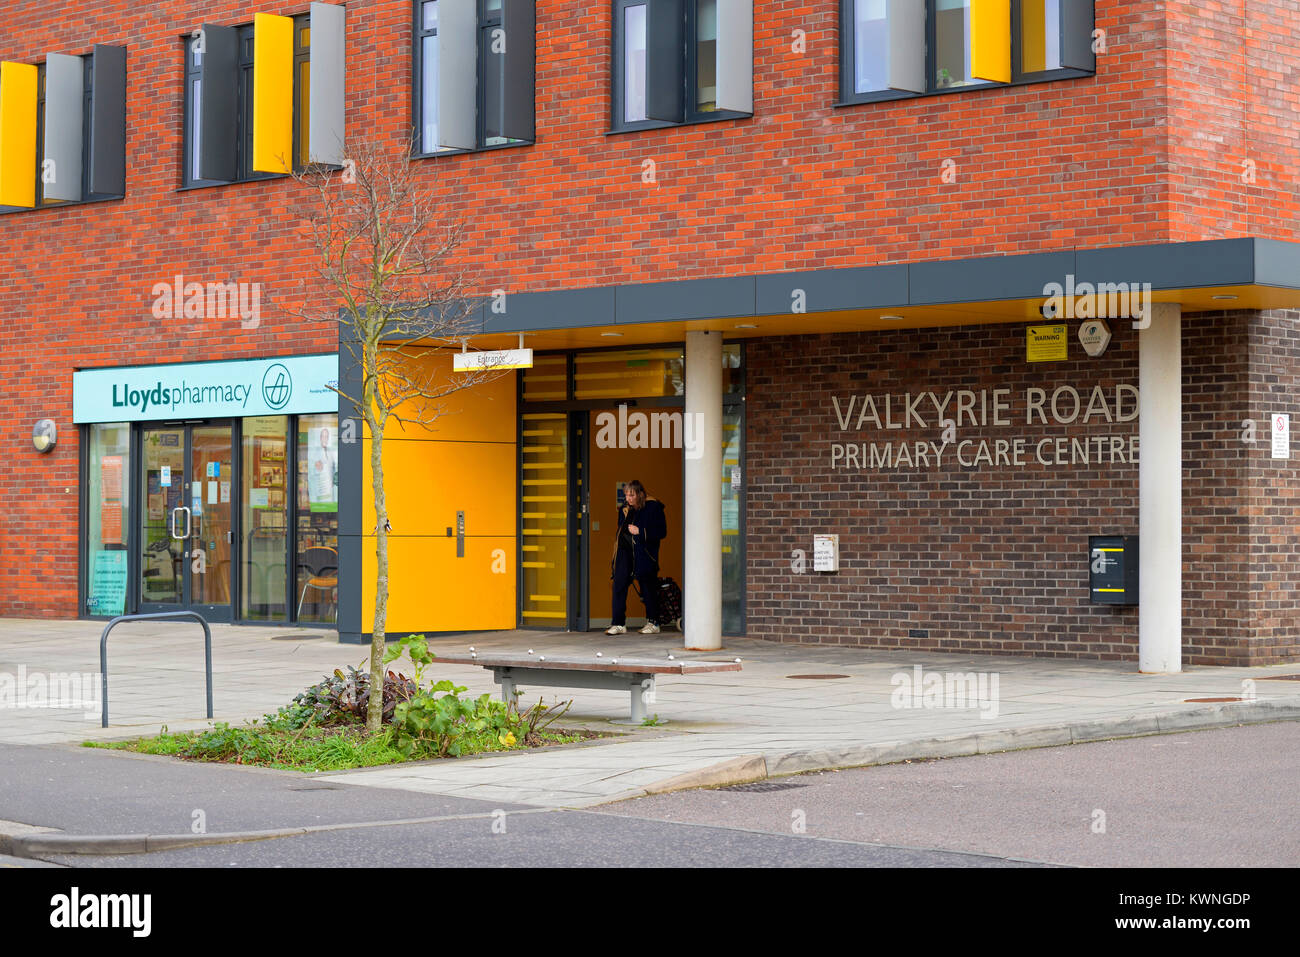 Valkyrie Road Primary Care Centre doctors surgery and Lloyds pharmacy chemist. Westcliff on Sea, Essex, UK. NHS - Stock Image